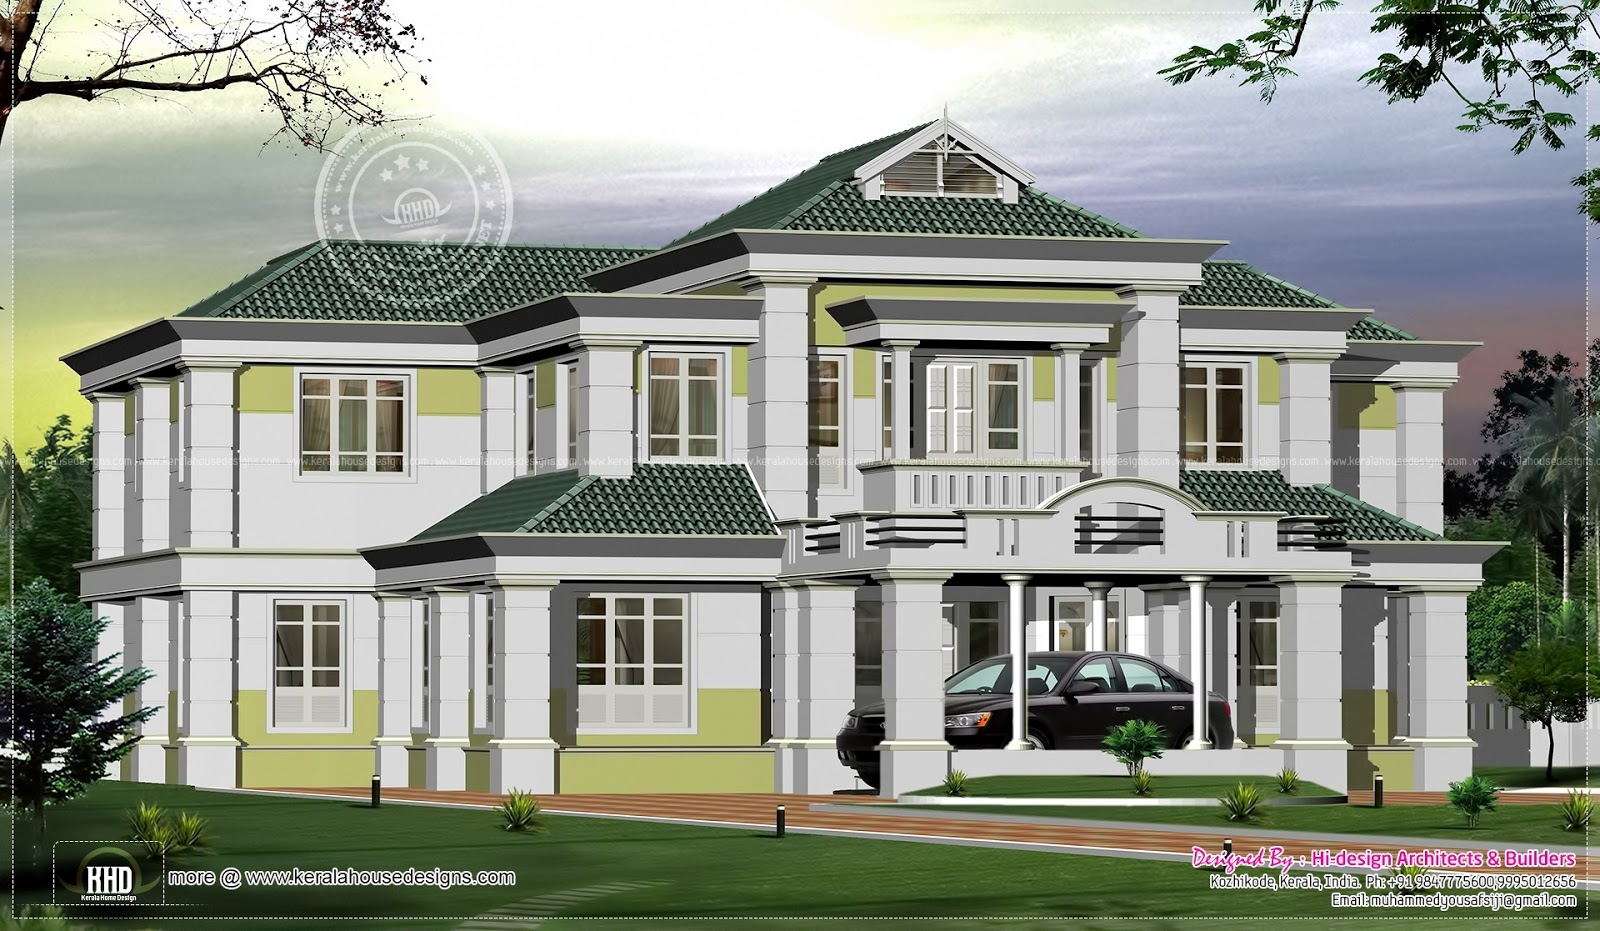 Kerala luxury bungalow model home for Luxury bungalow designs